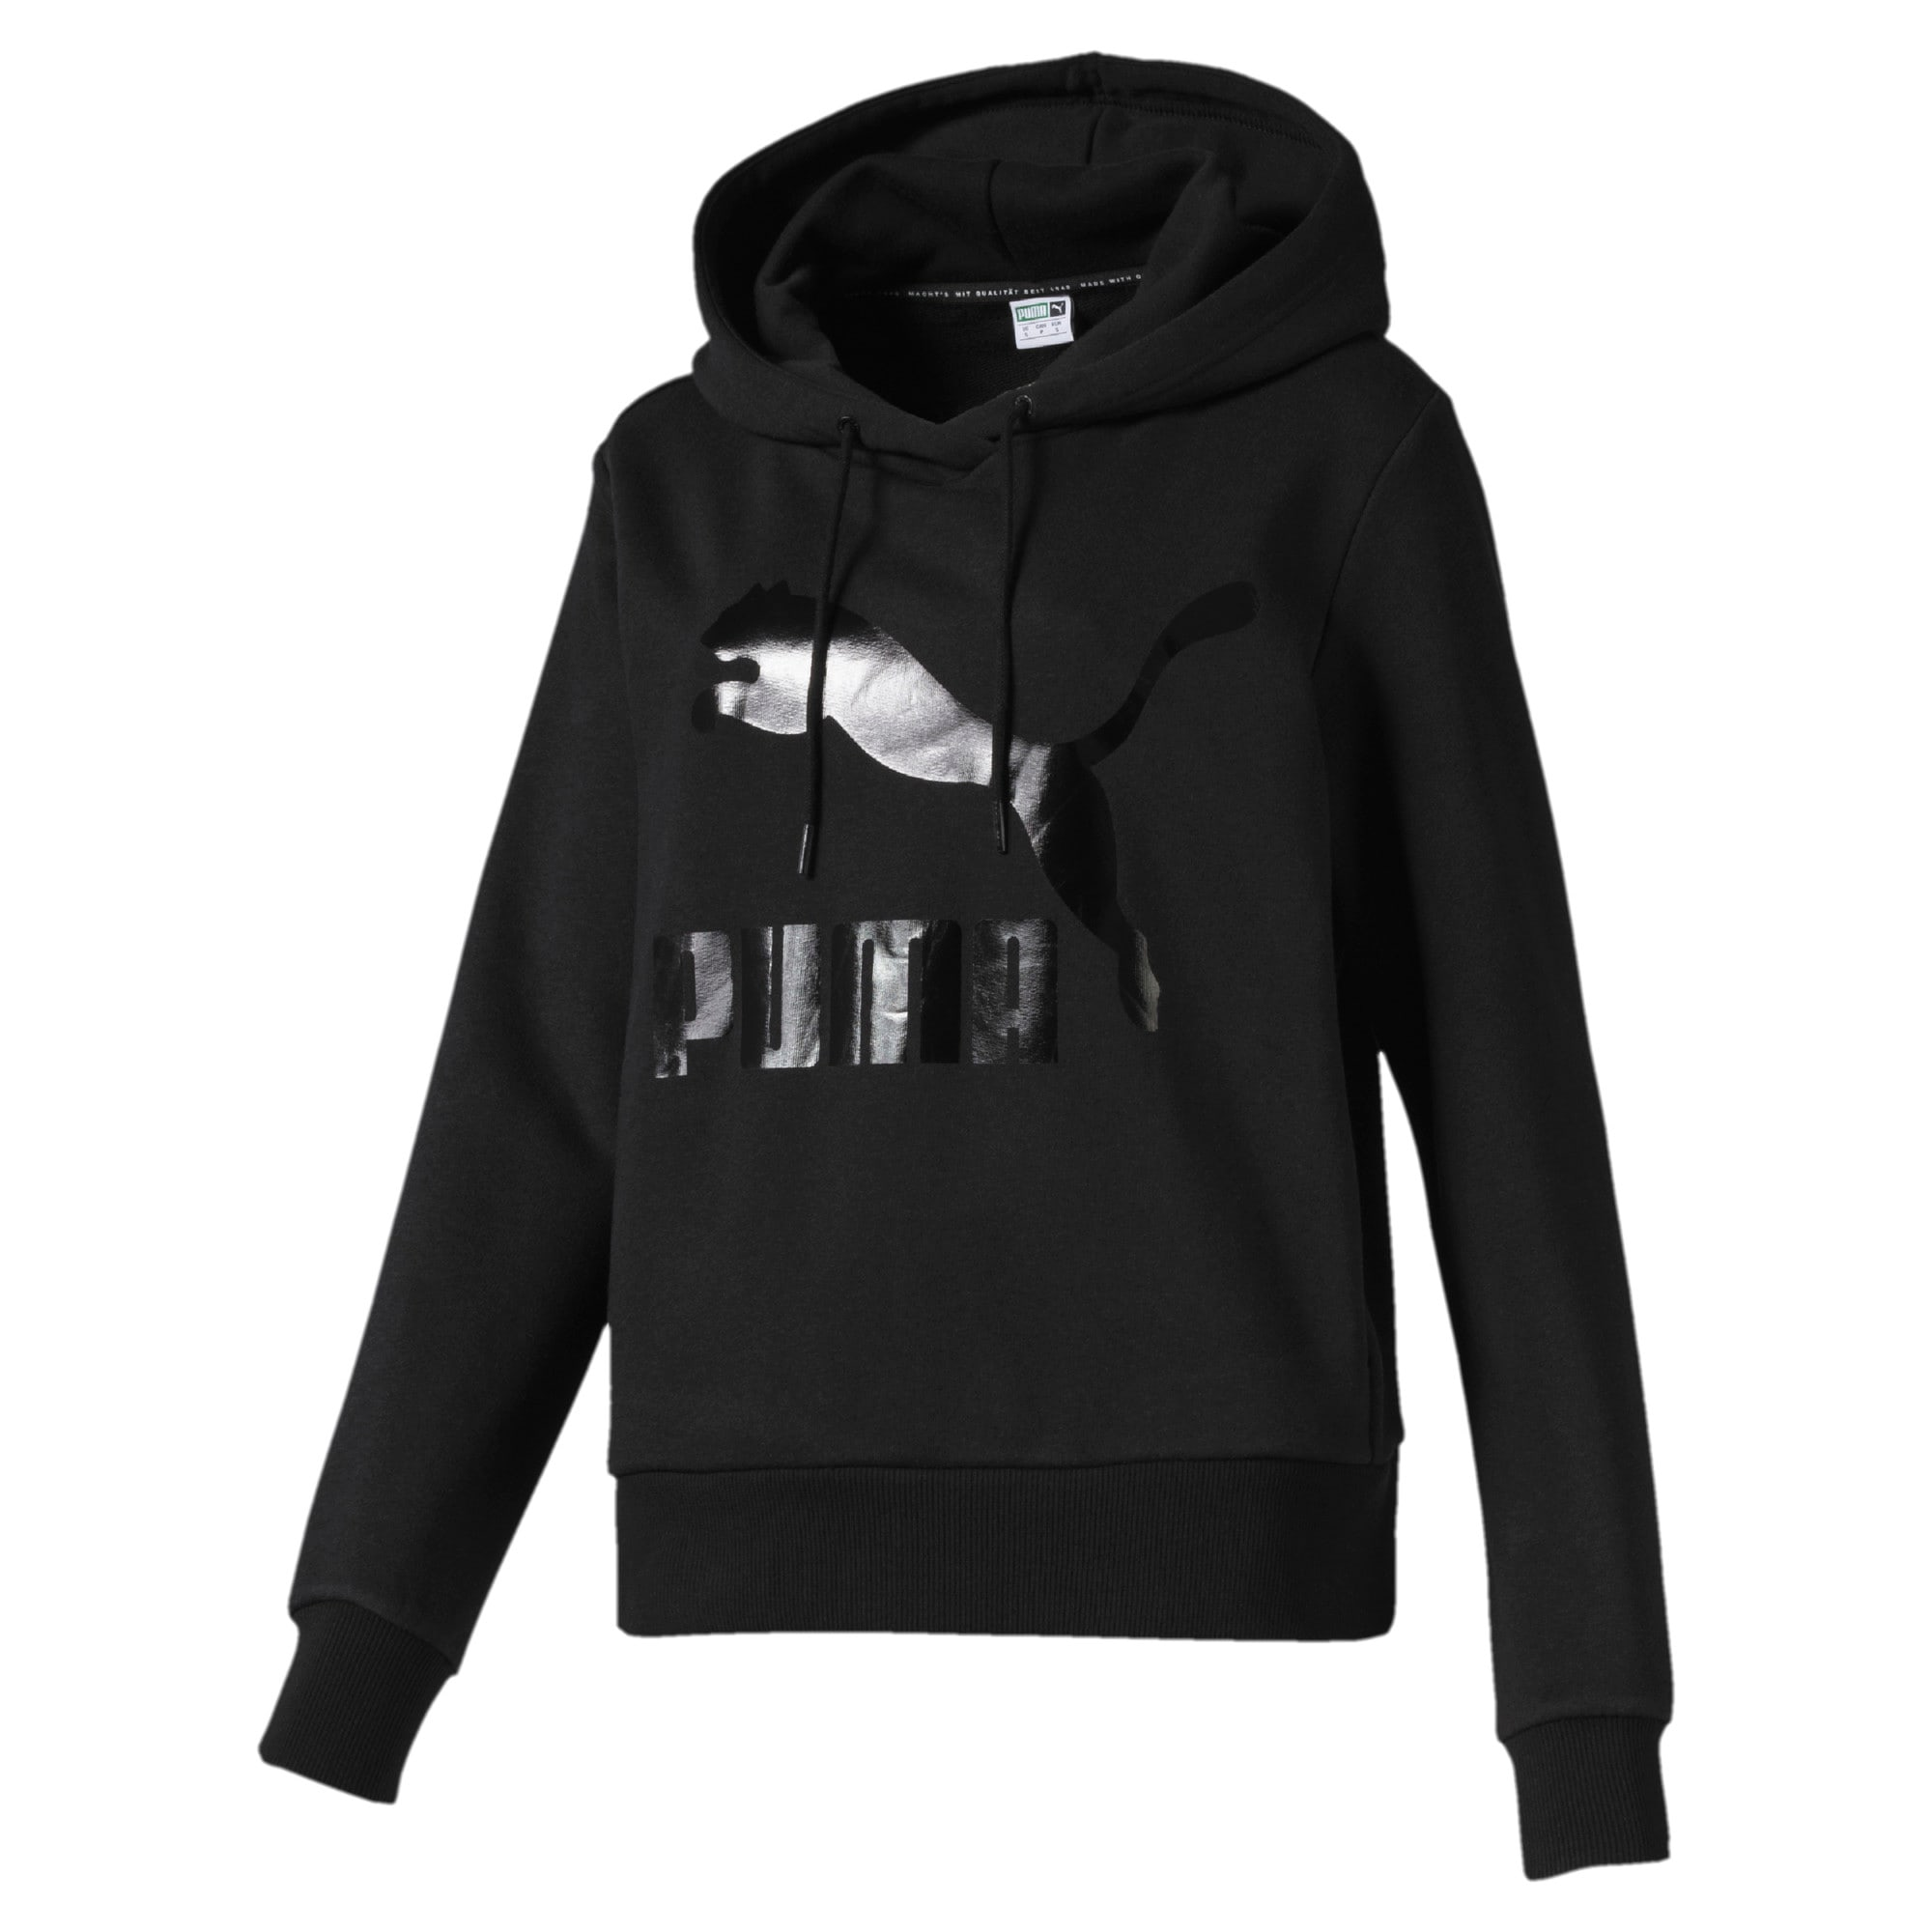 Thumbnail 1 of Classics Women's Logo Hoodie, Puma Black, medium